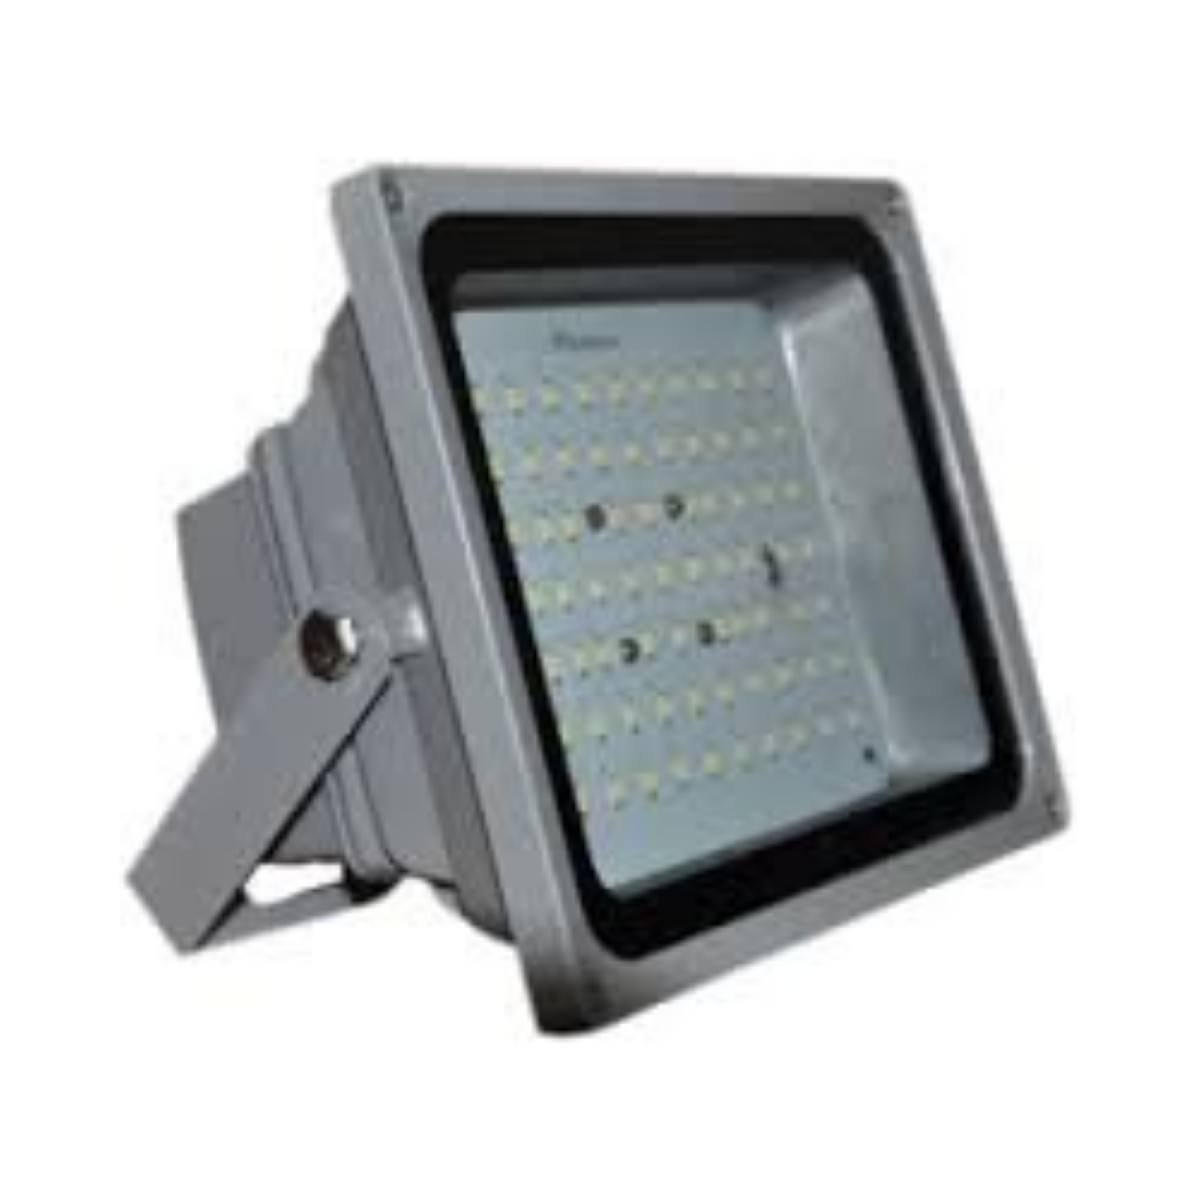 Buy Generic 500 Watt Led Halogen Flood Light Warm White Online At Low Prices In India Amazon In